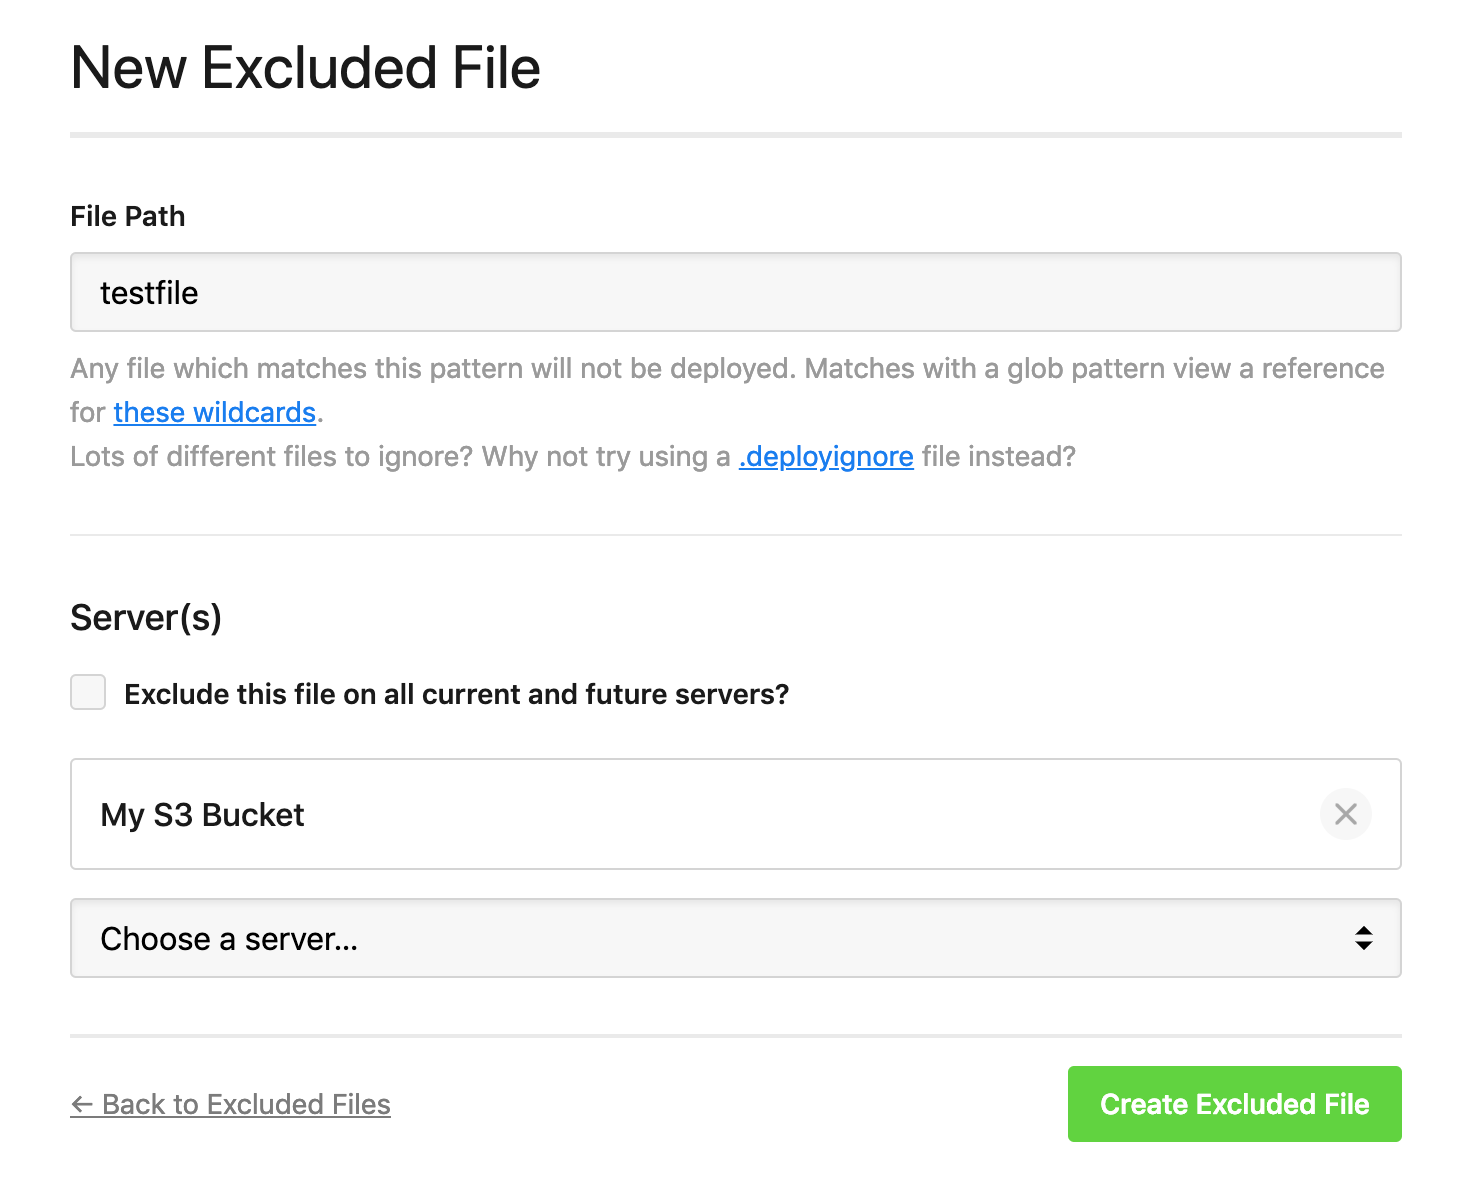 New excluded file